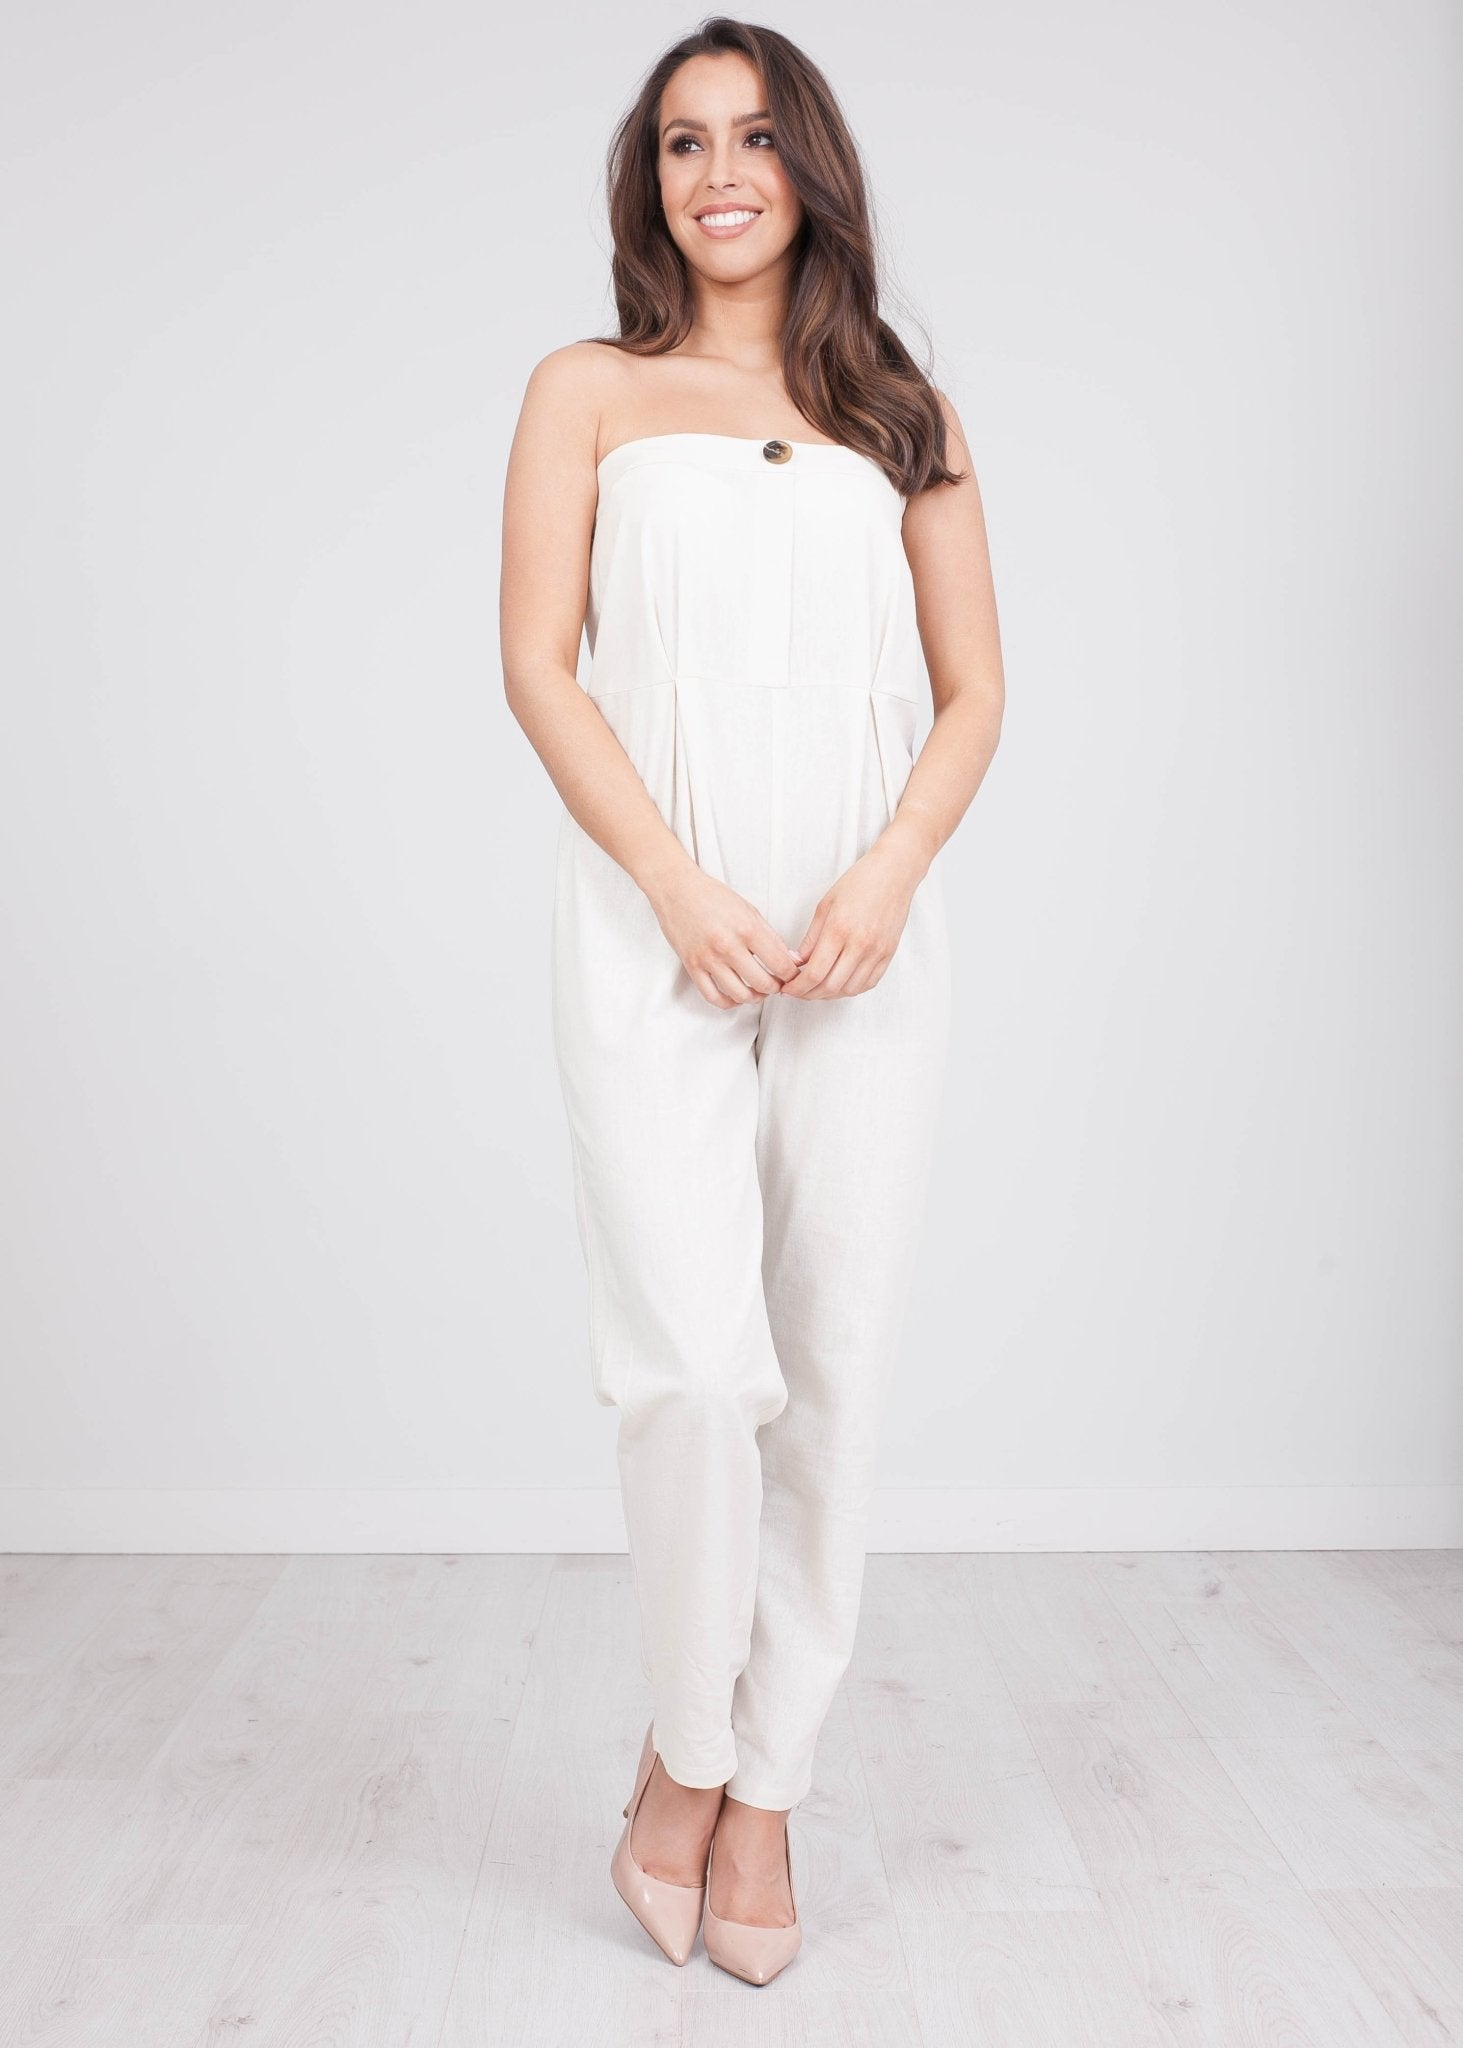 Jasmine Cream Linen Jumpsuit - The Walk in Wardrobe